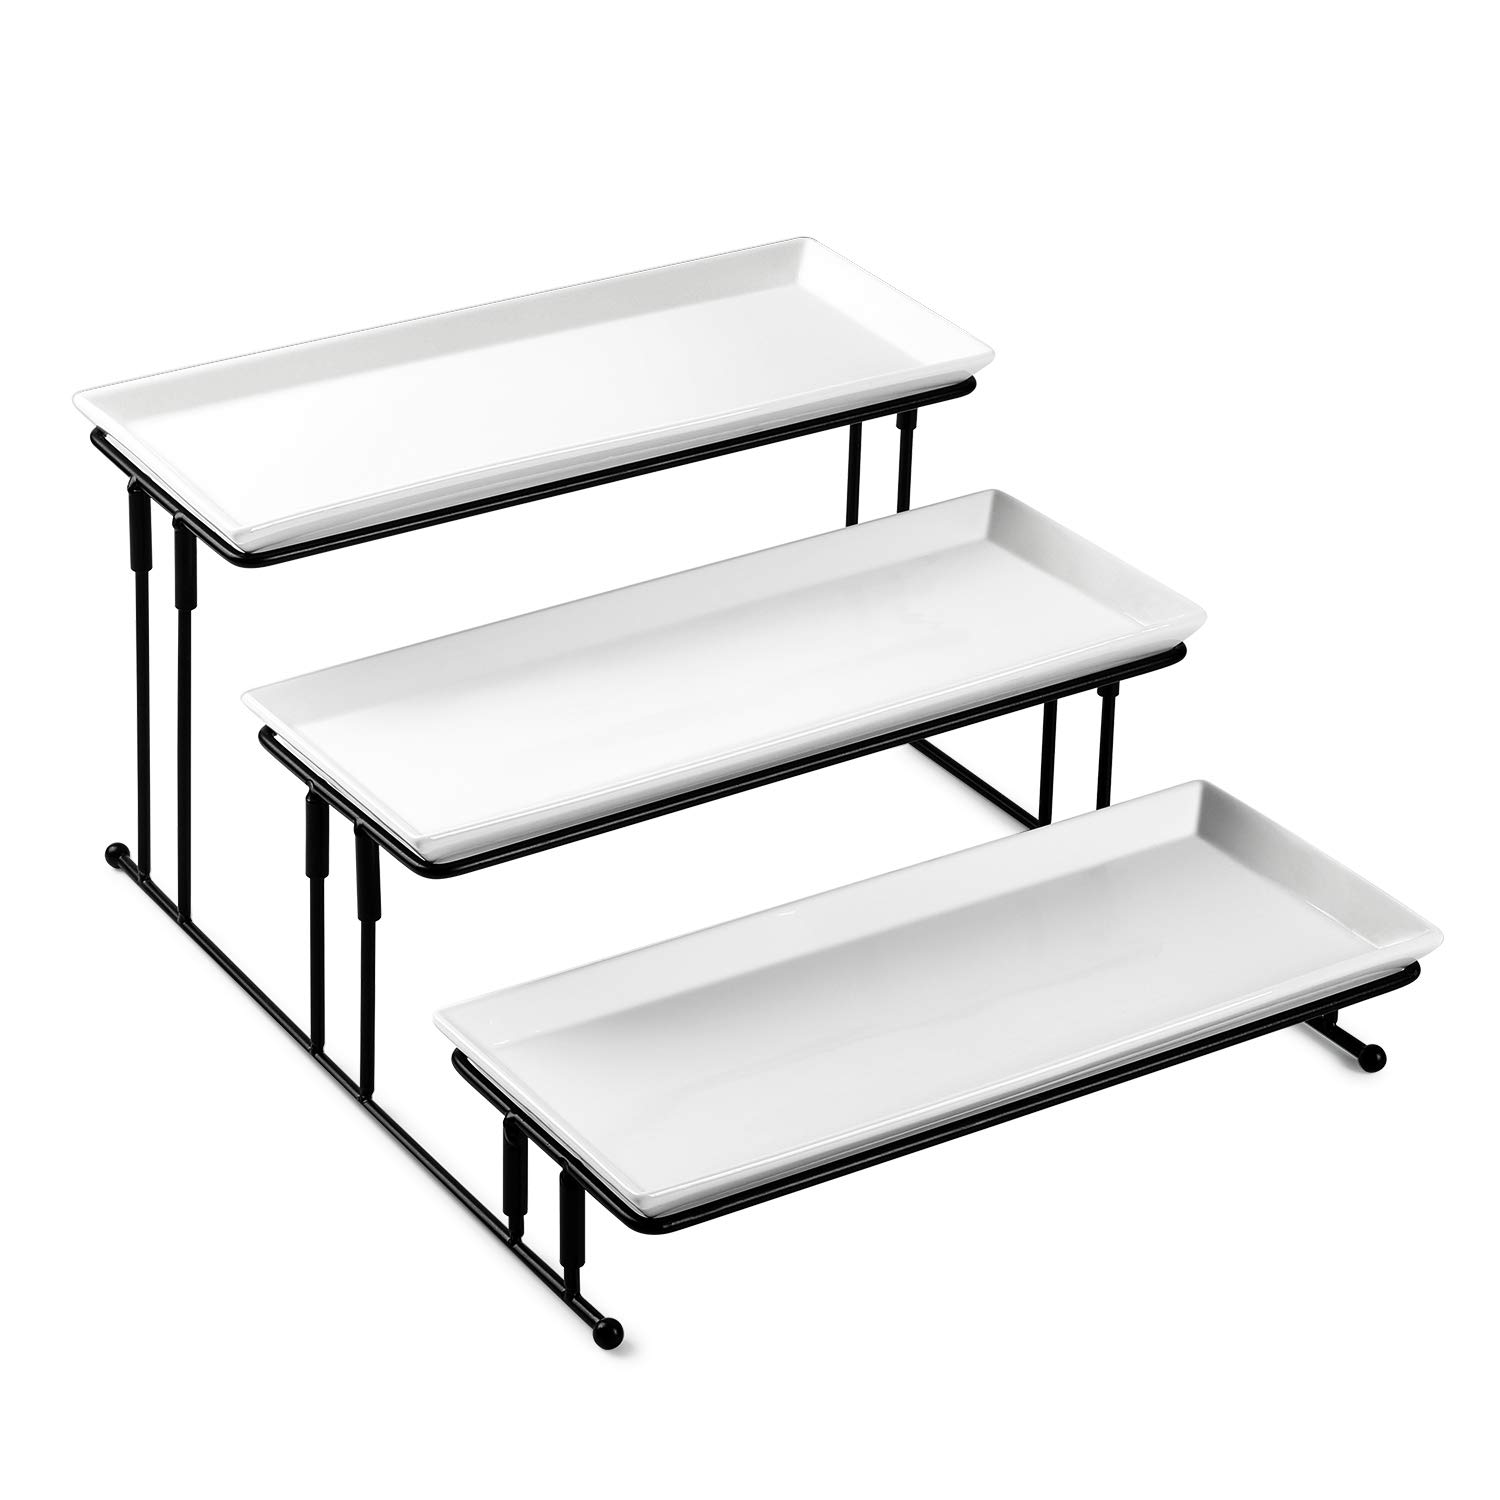 Sweese 733.101 3 Tiered Serving Stand - Stairstep Sturdier Food Display Stand with White Porcelain Platters, Serving Trays for Parties